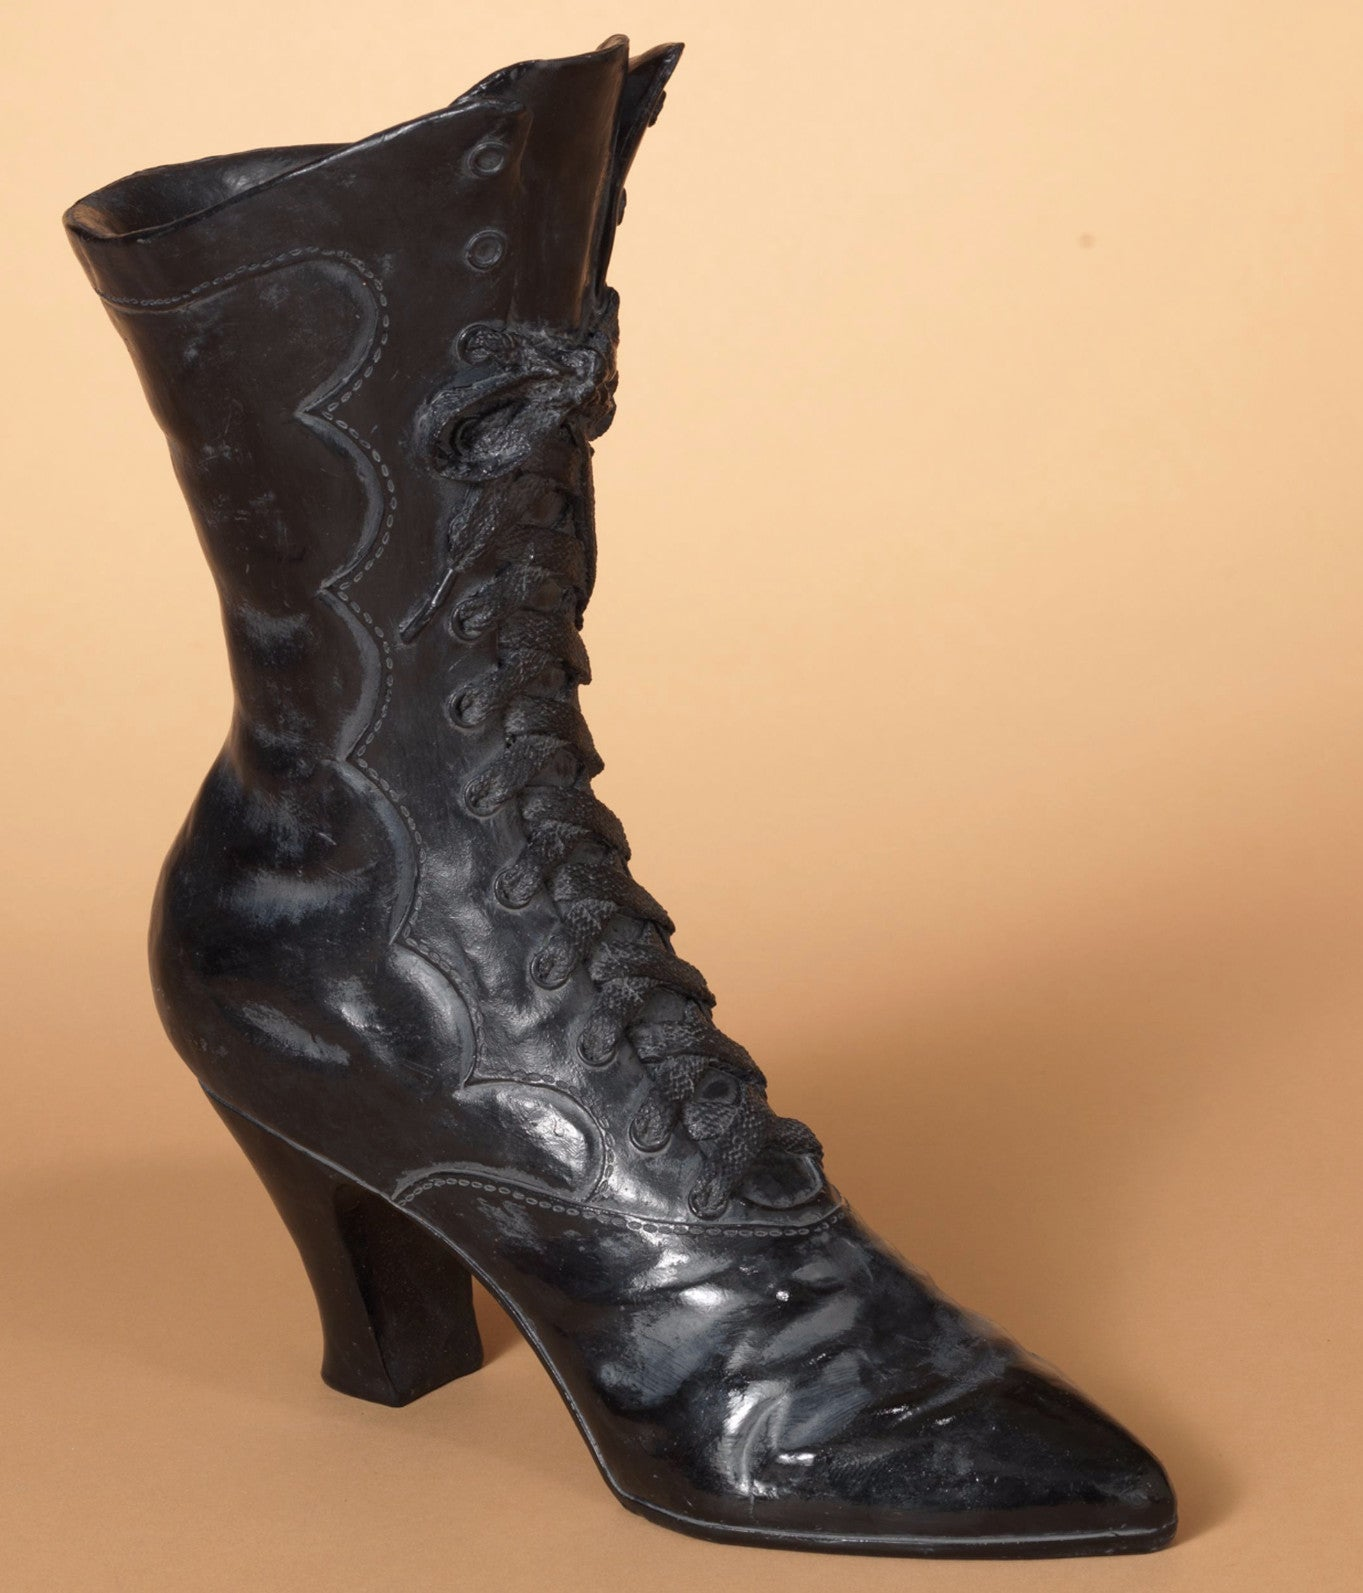 Old Victorian Witch Boot Decoration